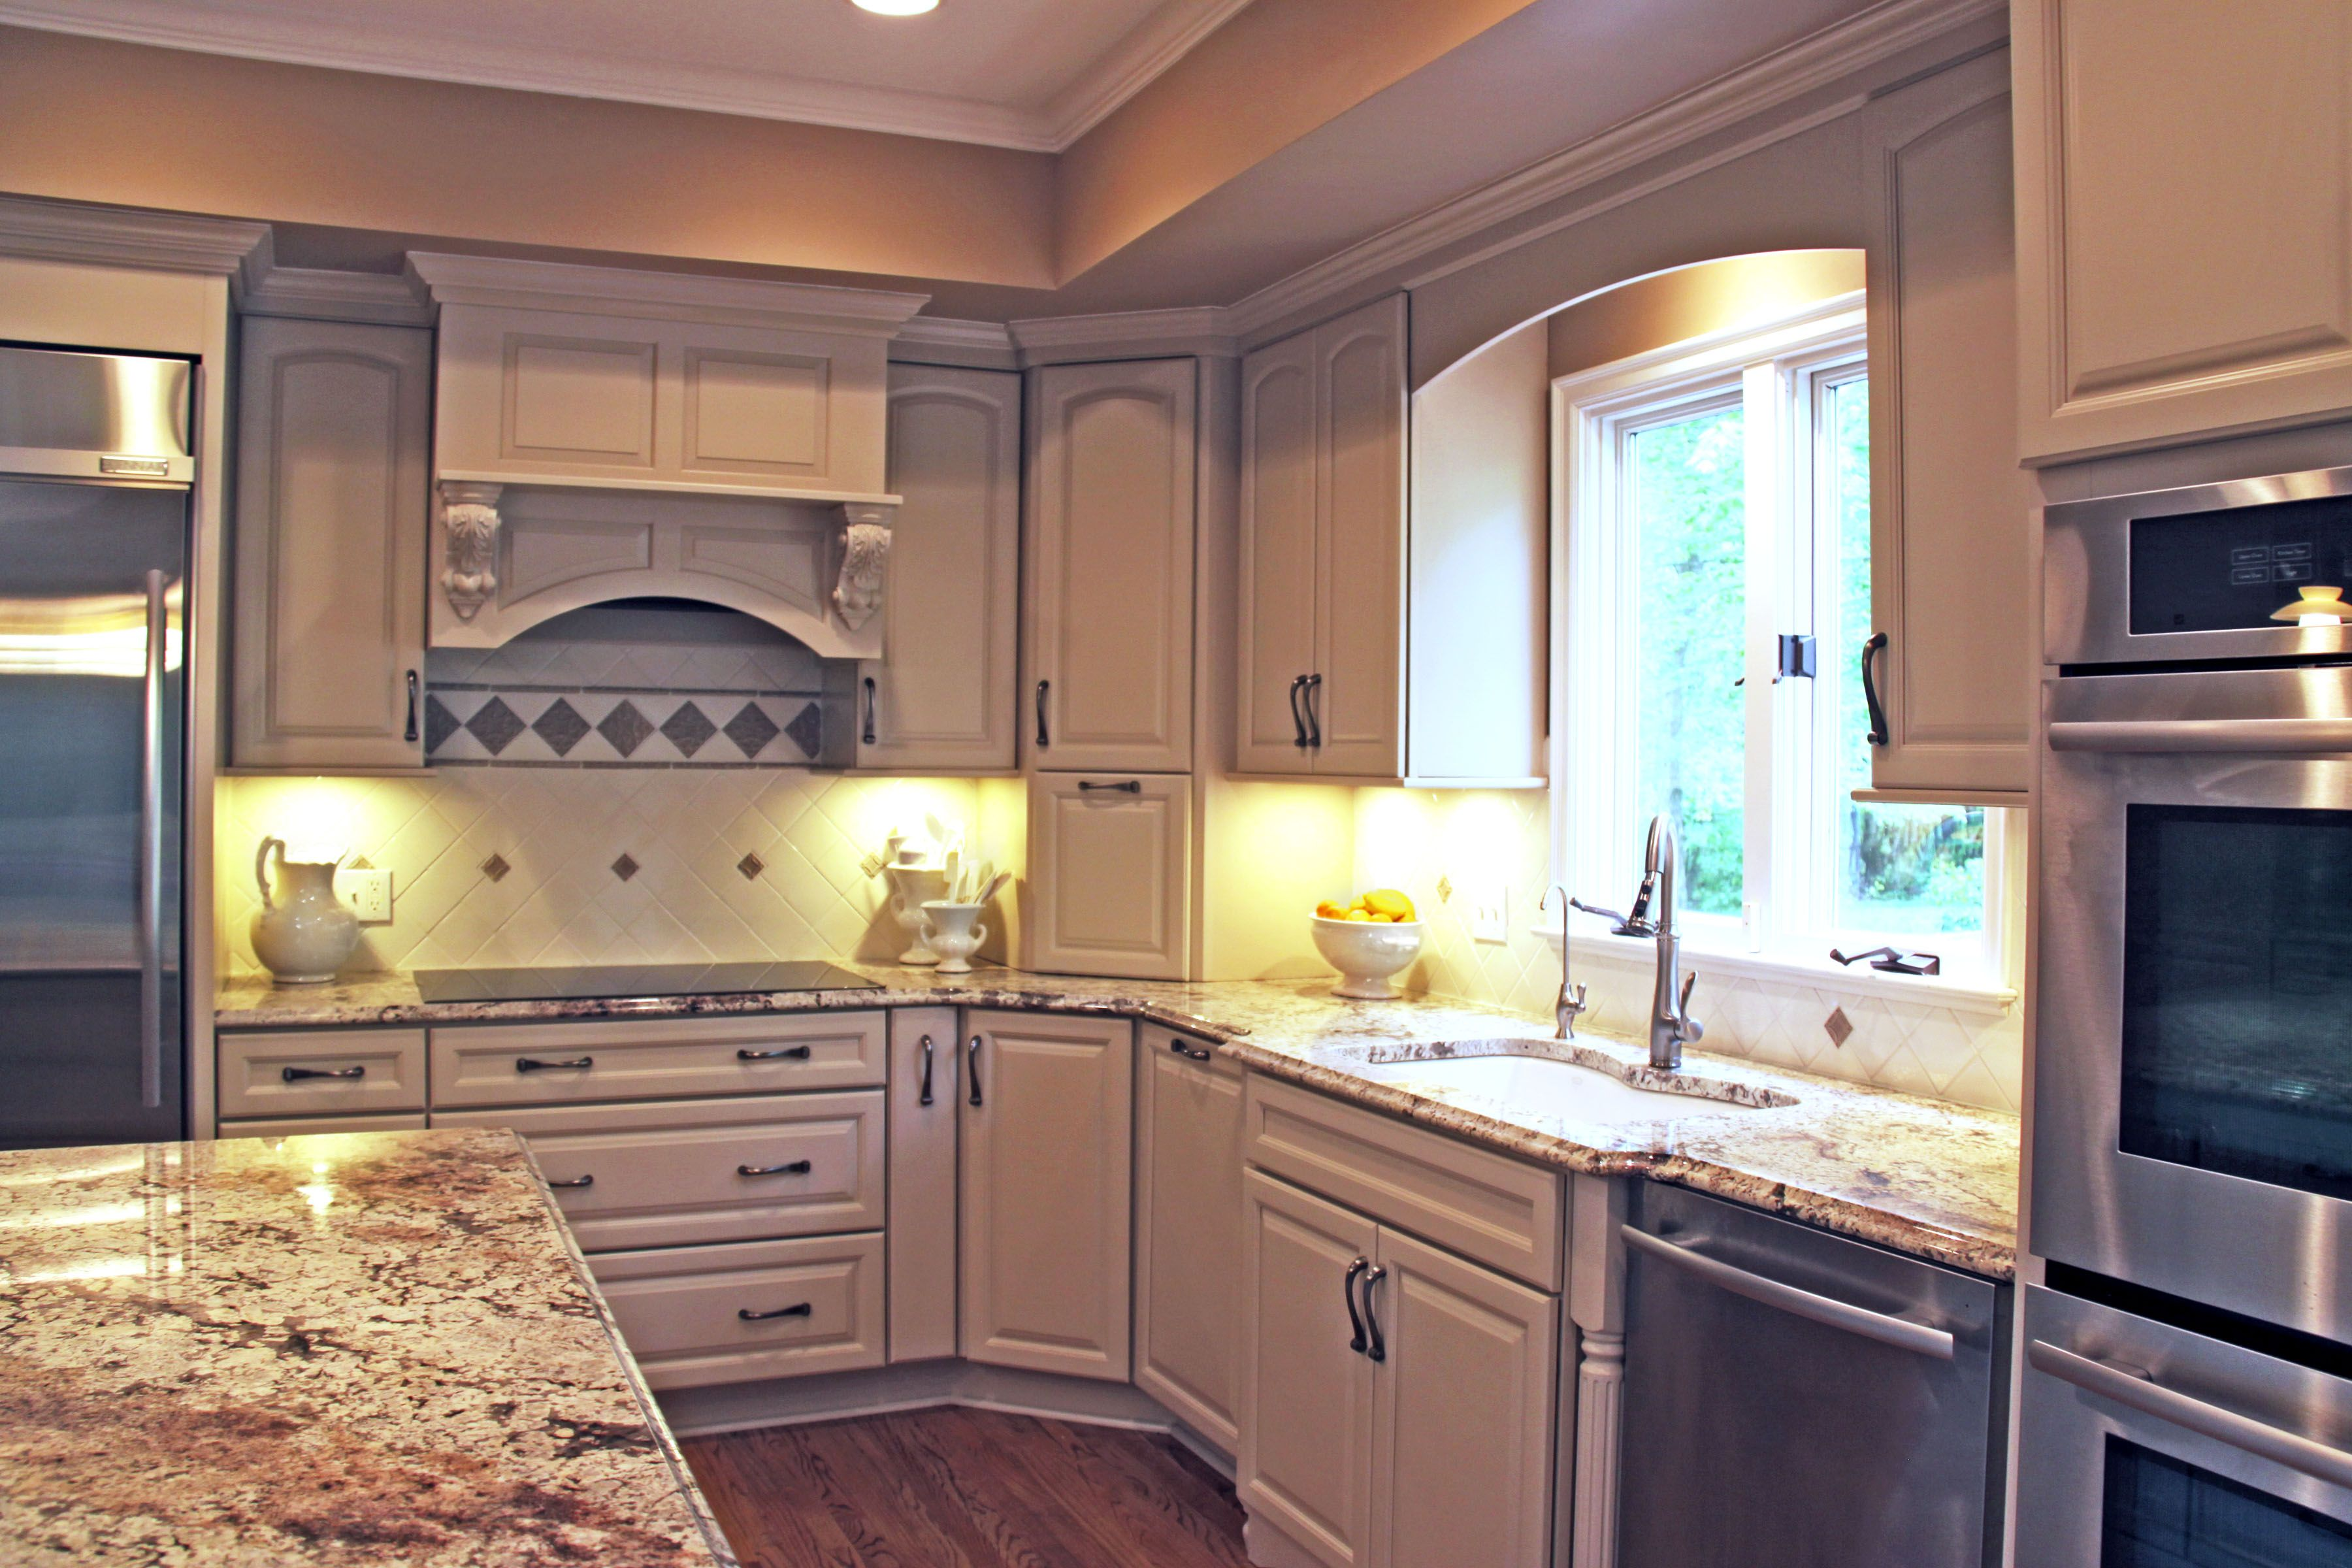 Image Result For Kraftmaid Cabinets Mushroom Color Kitchen Remodel Kraftmaid Cabinets Kitchen